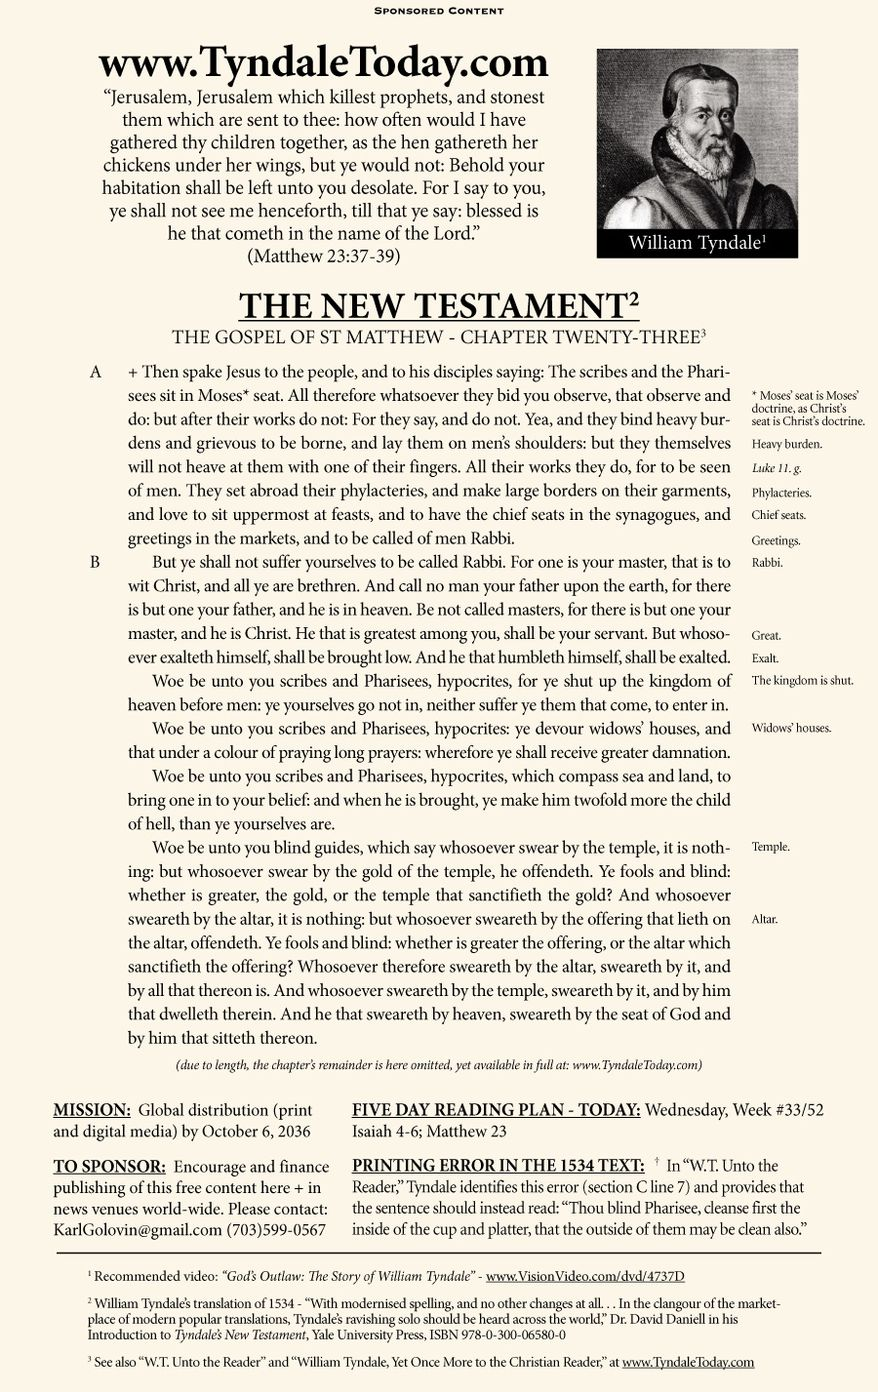 A daily reading of William Tyndale's 1534 translation of The New Testament from Tyndale Today. (Sponsored content August 16, 2017 in The Washington Times)